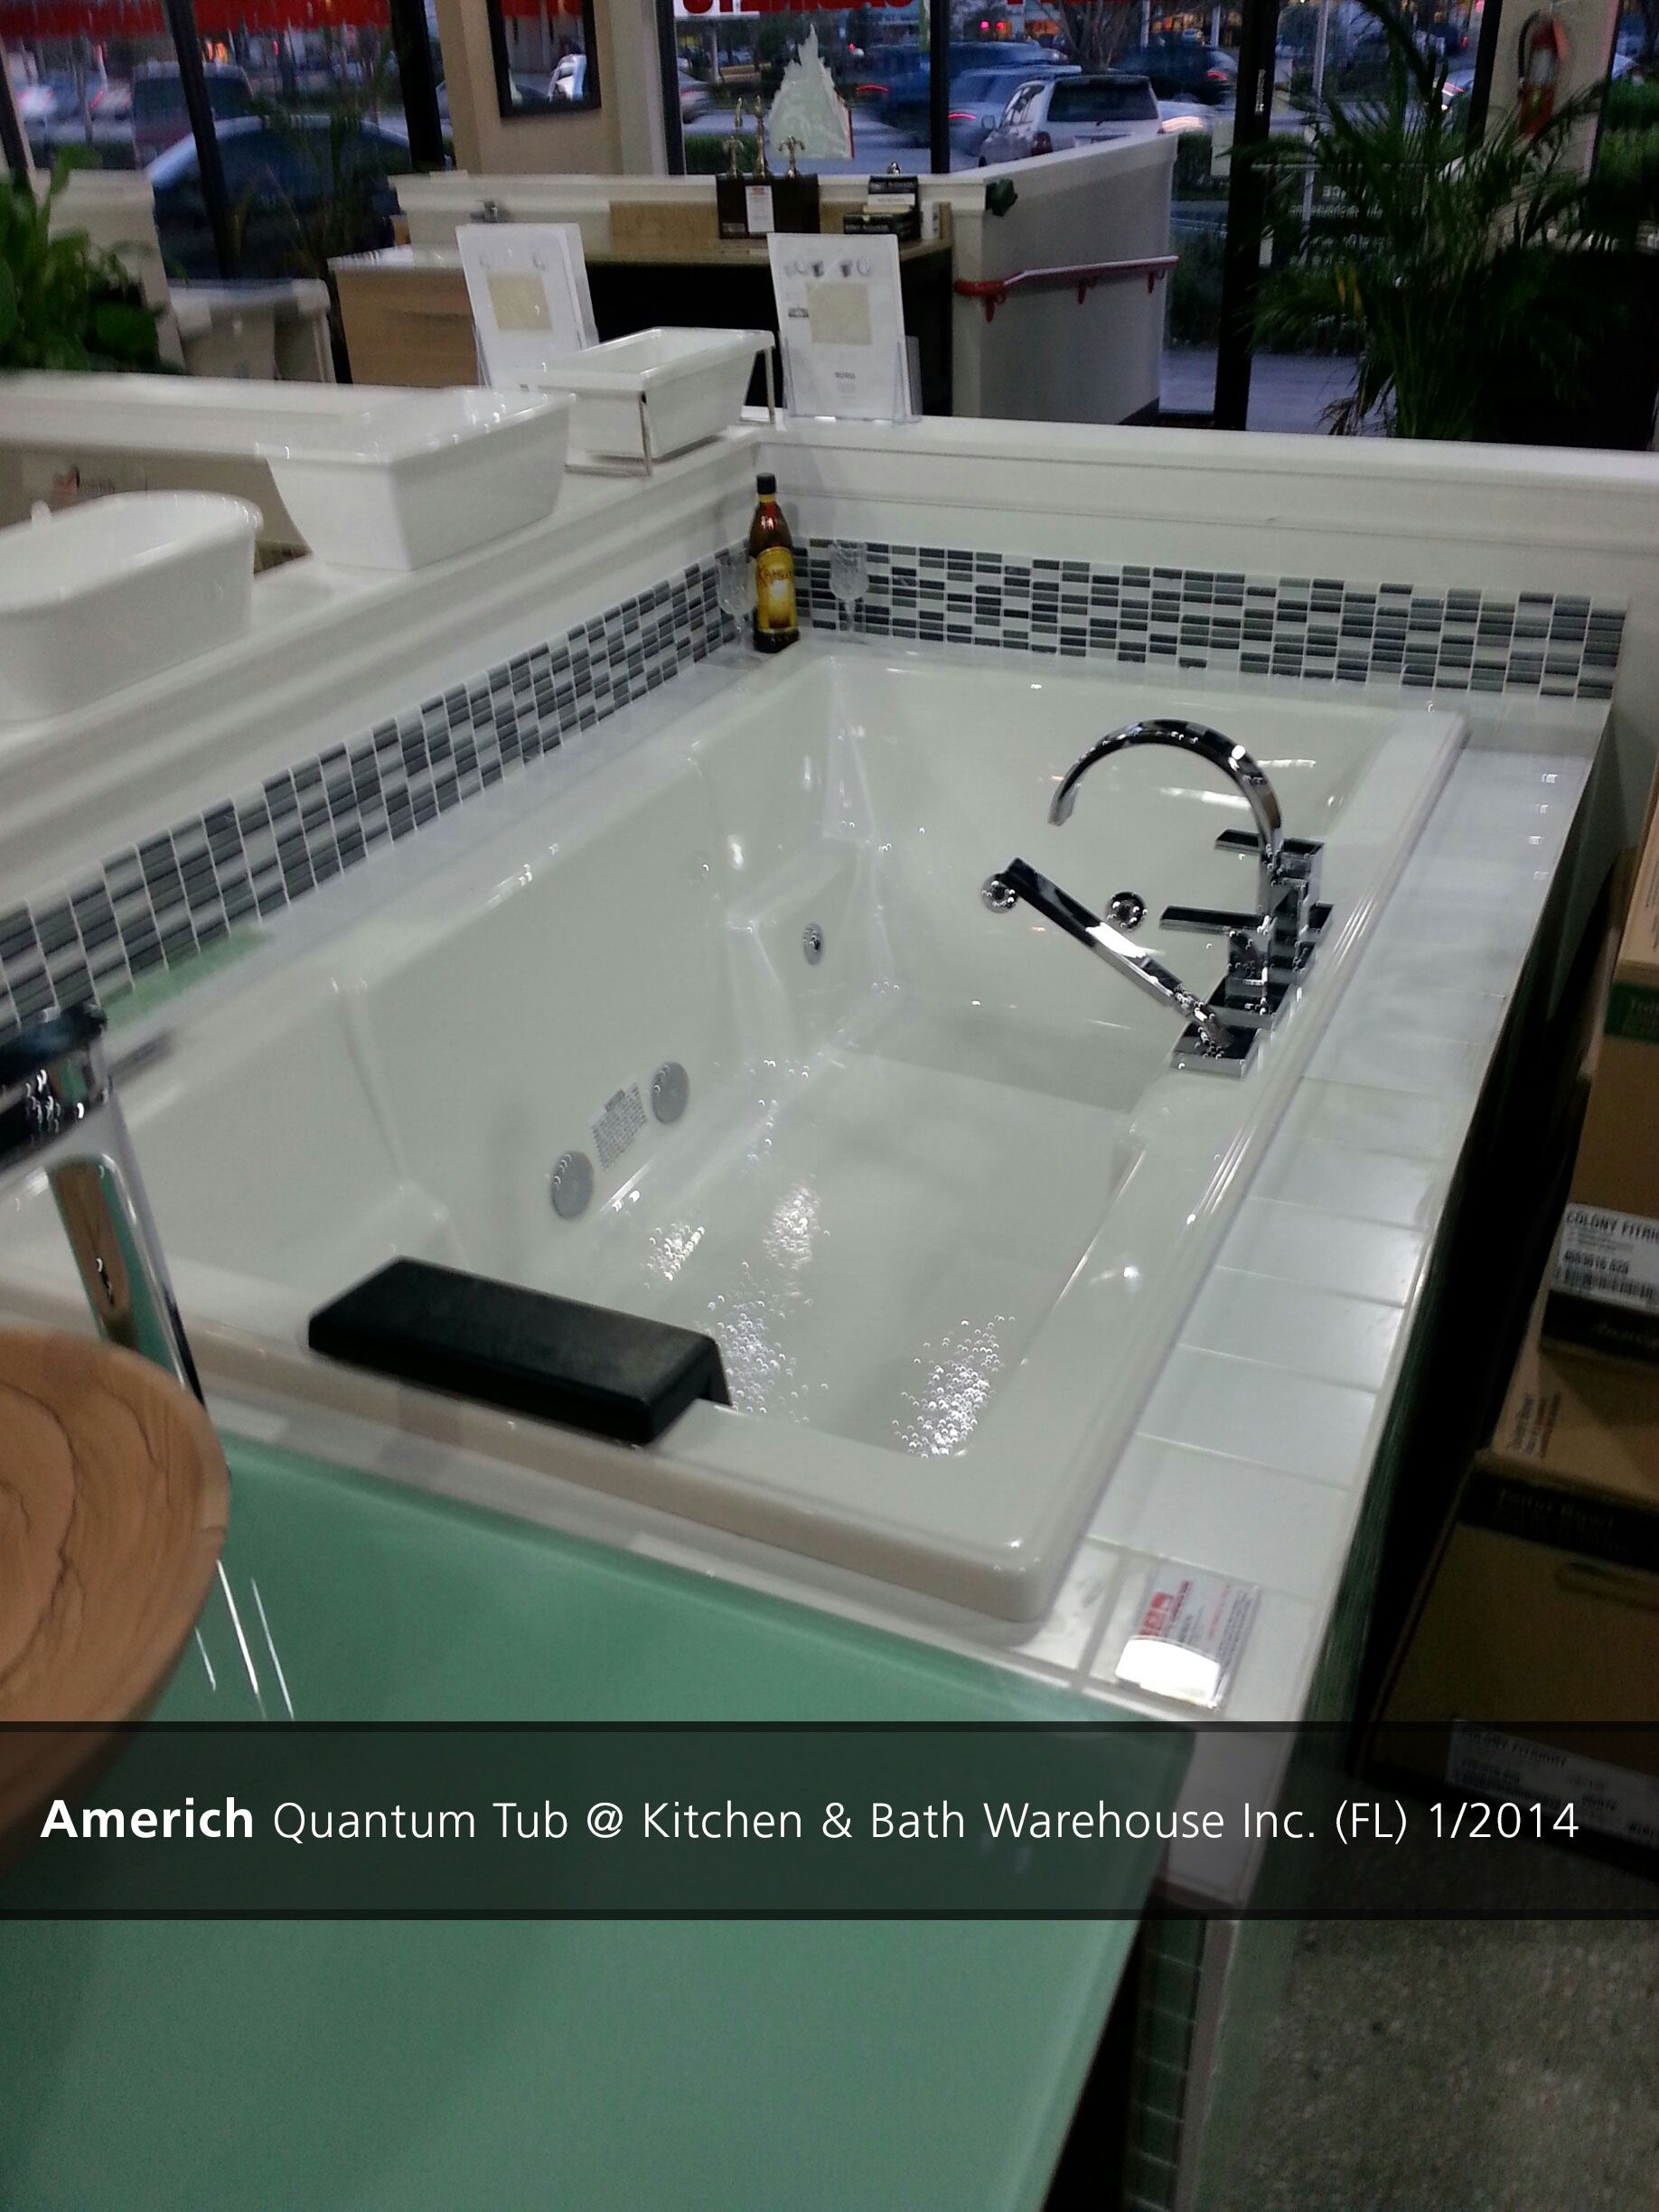 Americh Quantum Tub @ Kitchen & Bath Warehouse Inc. (FL) - 2014 ...